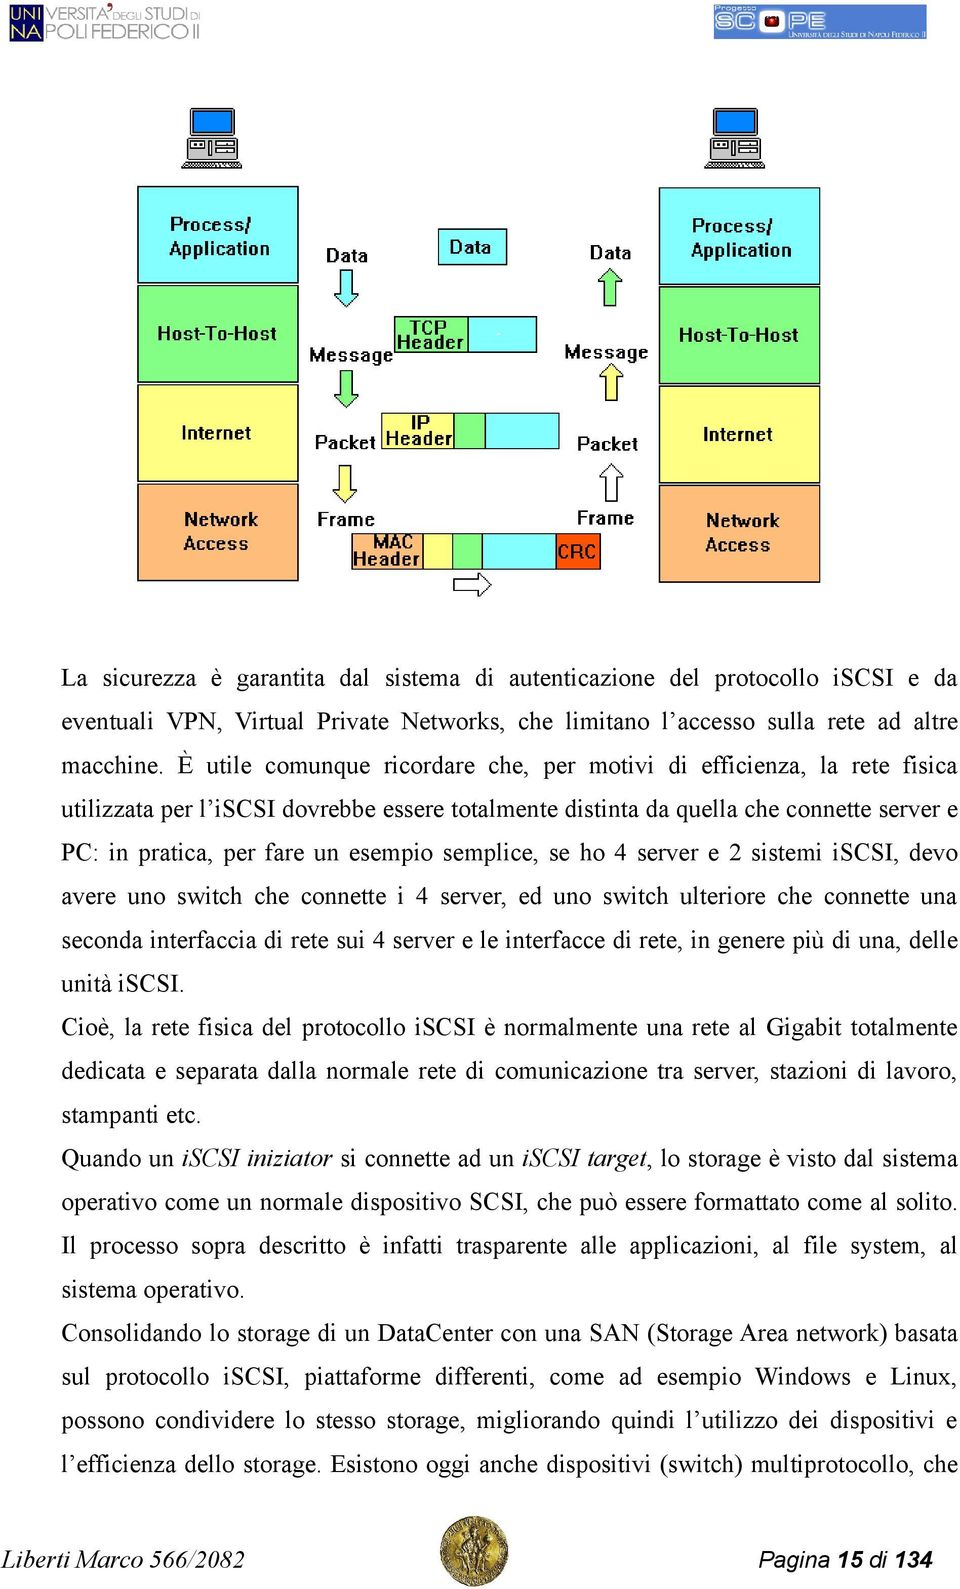 semplice, se ho server e sistemi iscsi, devo avere uno switch che connette i server, ed uno switch ulteriore che connette una seconda interfaccia di rete sui server e le interfacce di rete, in genere